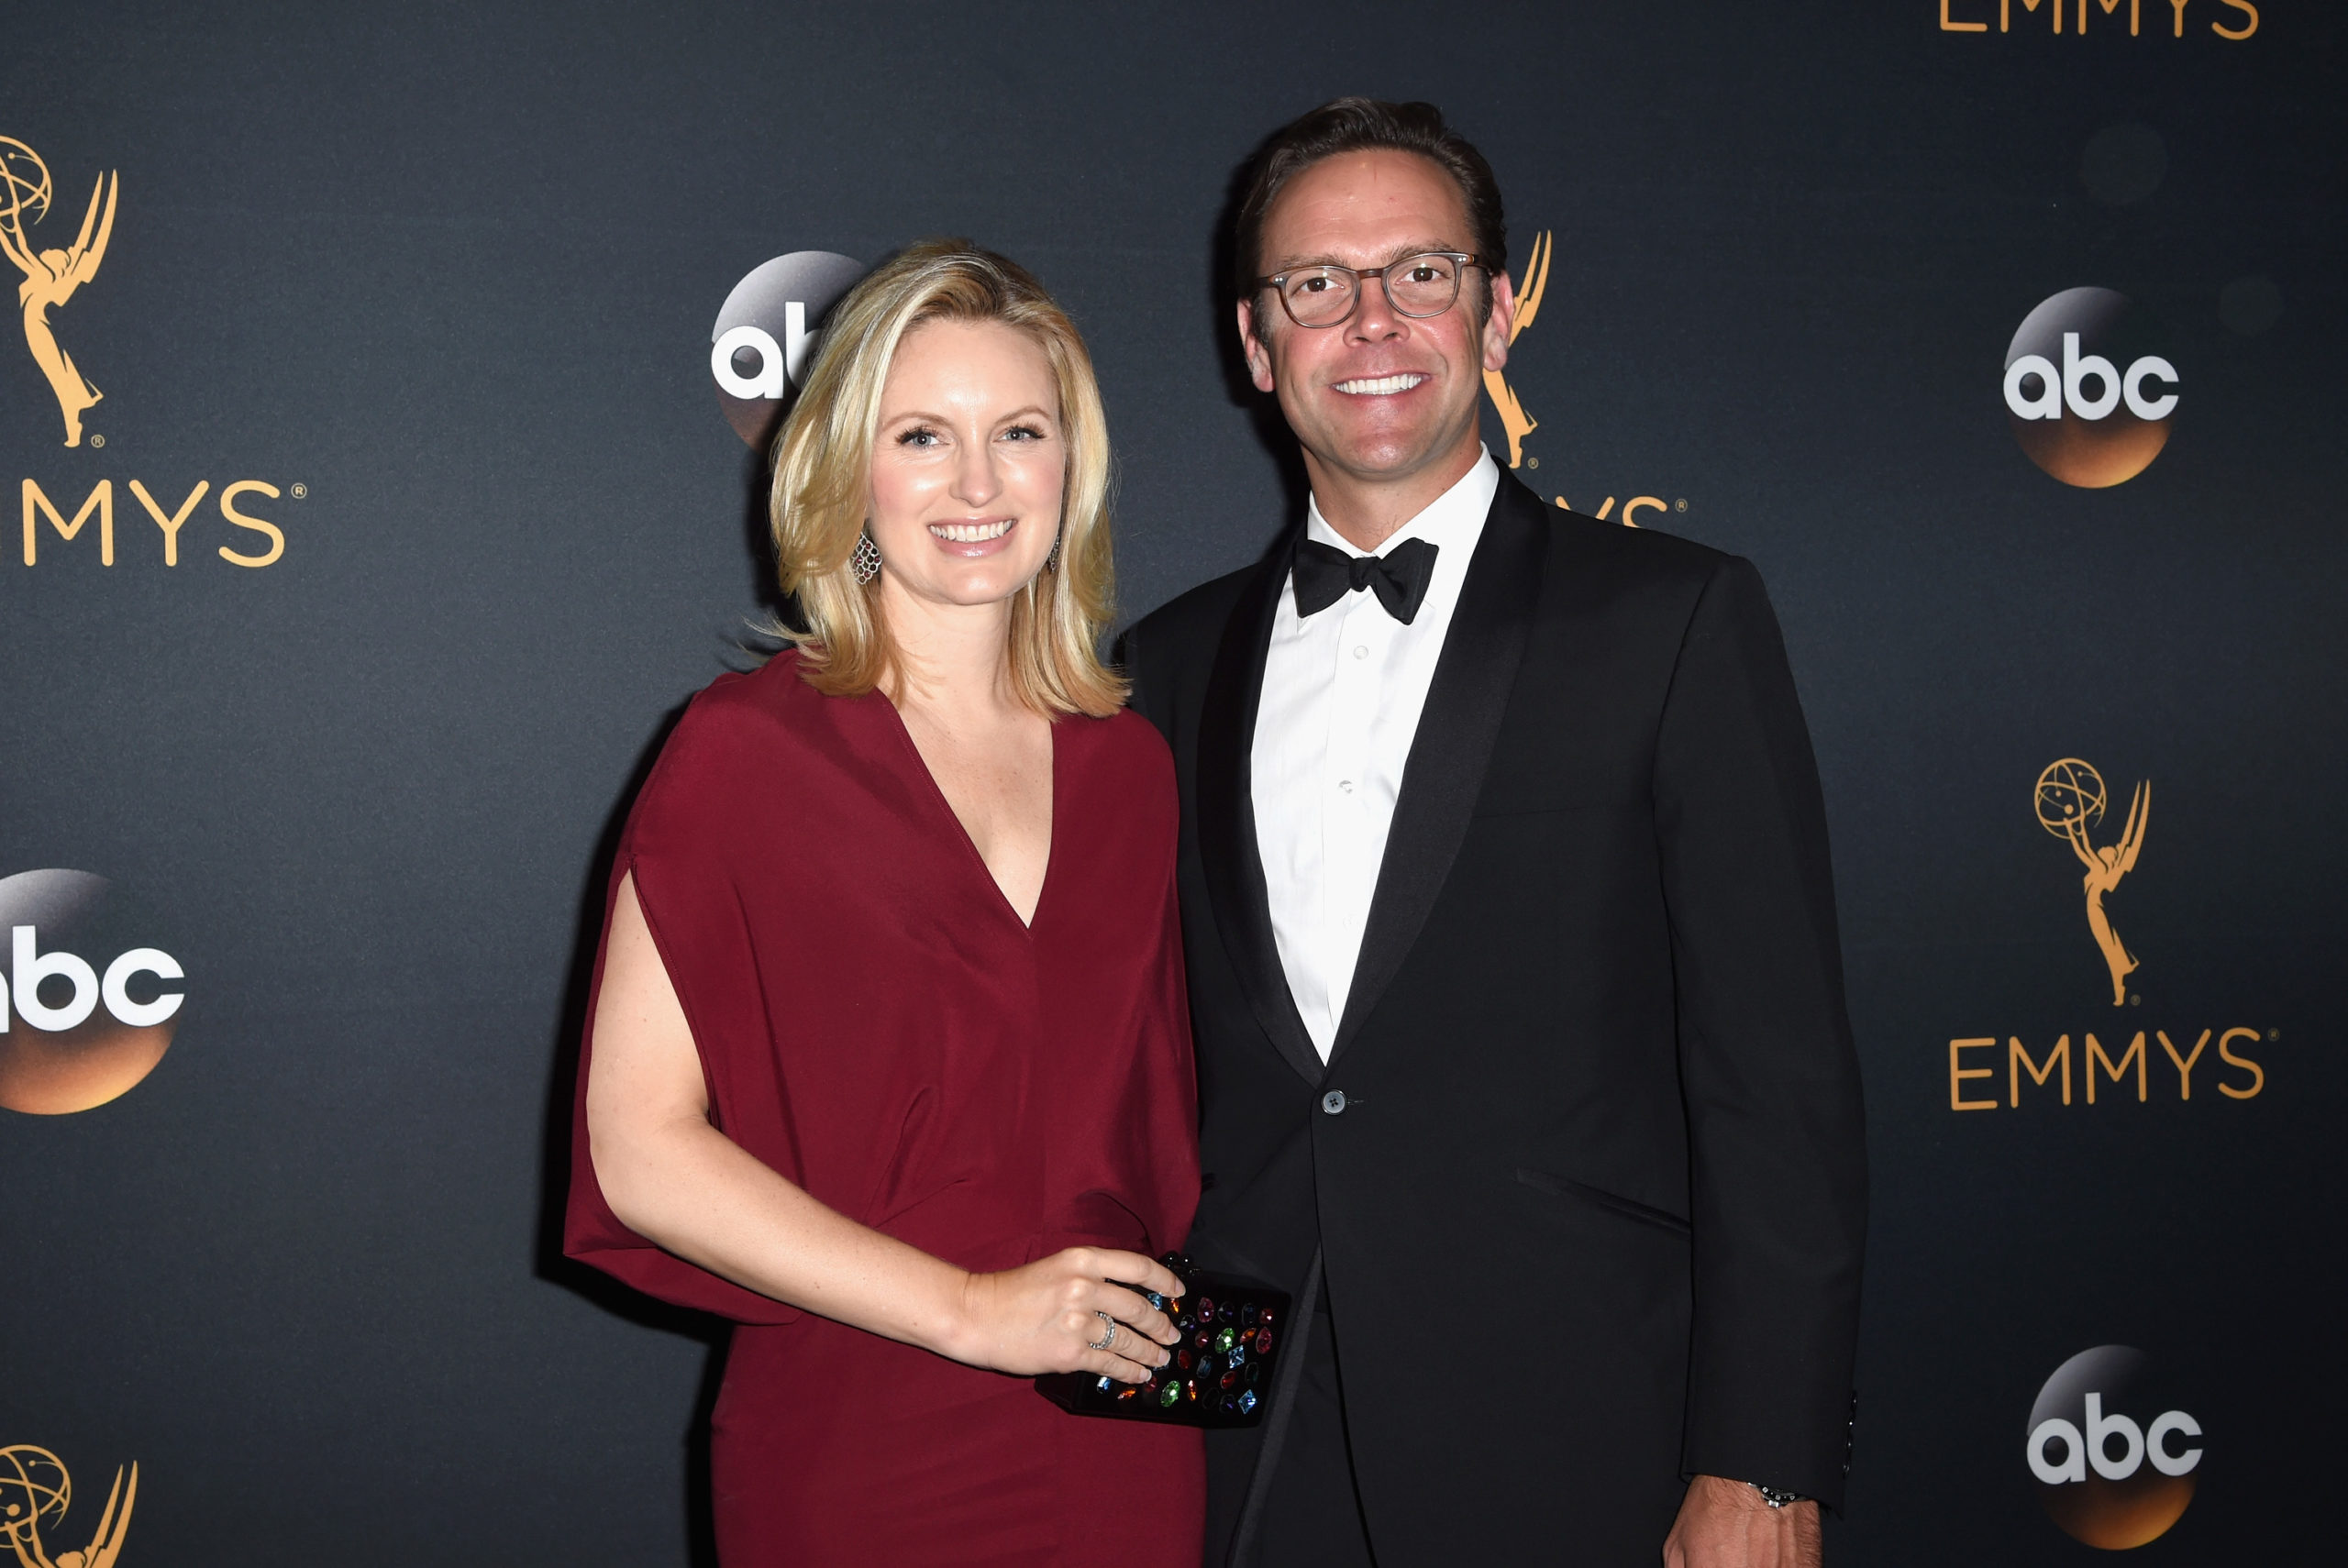 James Murdoch and his wife Kathryn Murdoch attend the 68th Annual Emmy Awards in 2016 in Los Angeles, California. (Emma McIntyre/Getty Images)